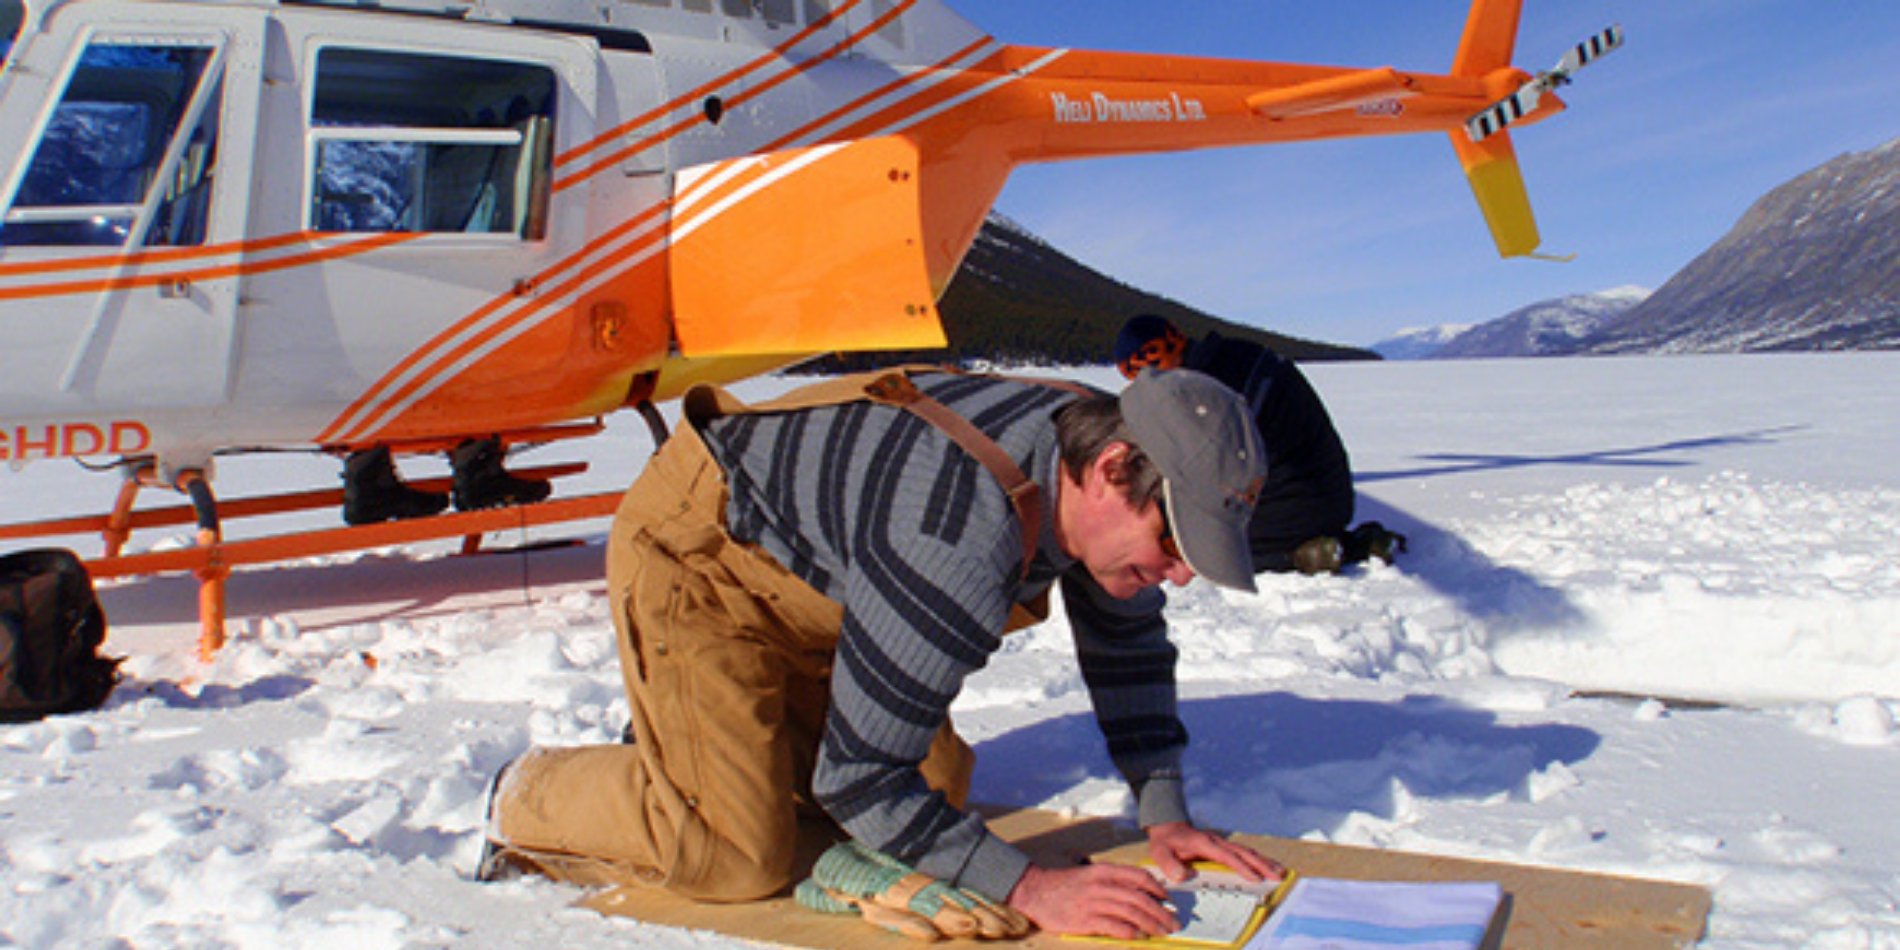 A man kneel to takes notes on the snowy ground in front of an orange and white helicopter